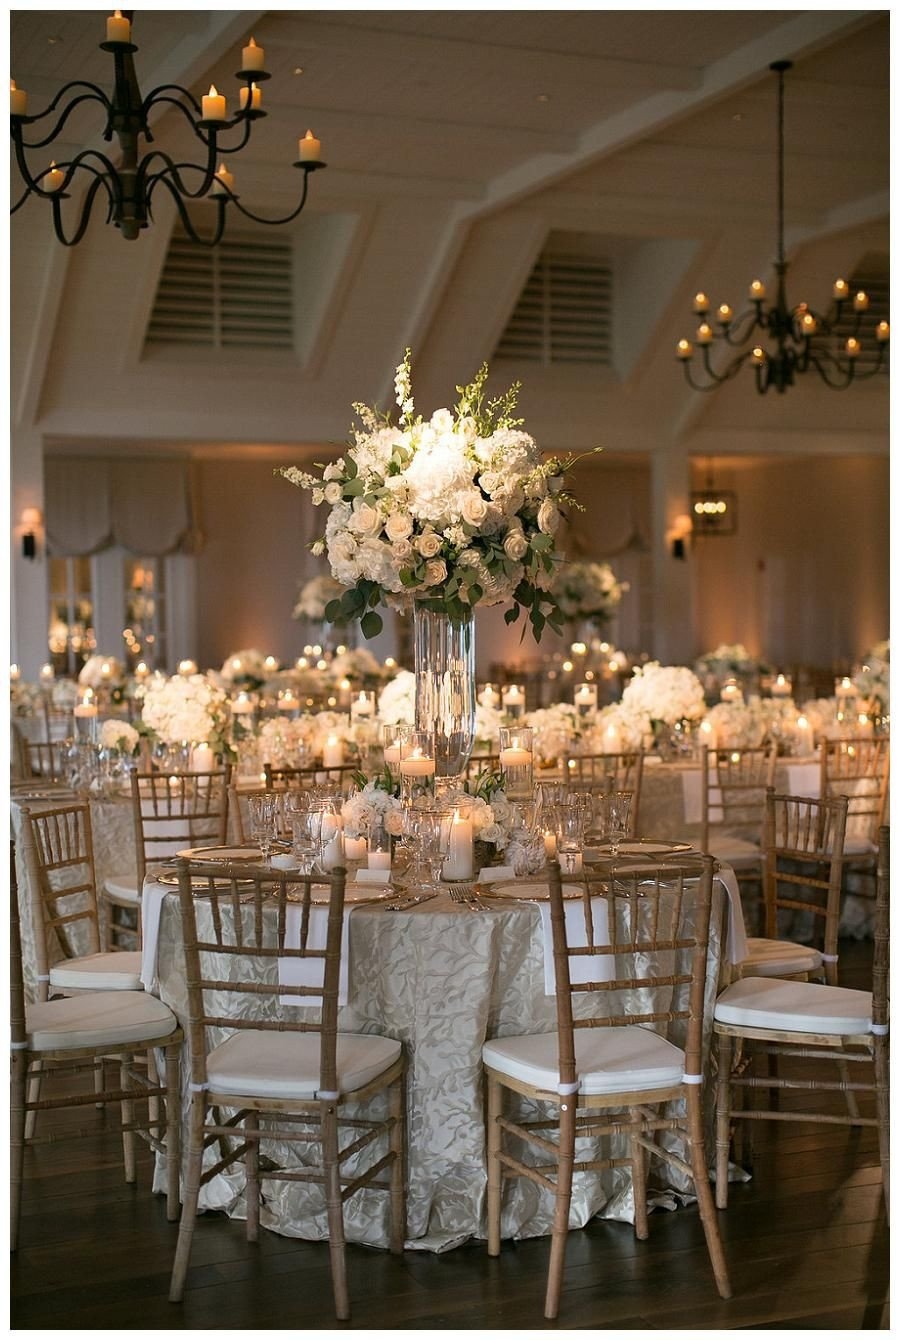 White and Gold Wedding Decor Awesome 42 White Wedding Decoration Ideas Wedding Decorations Wedding Supplies & Favors